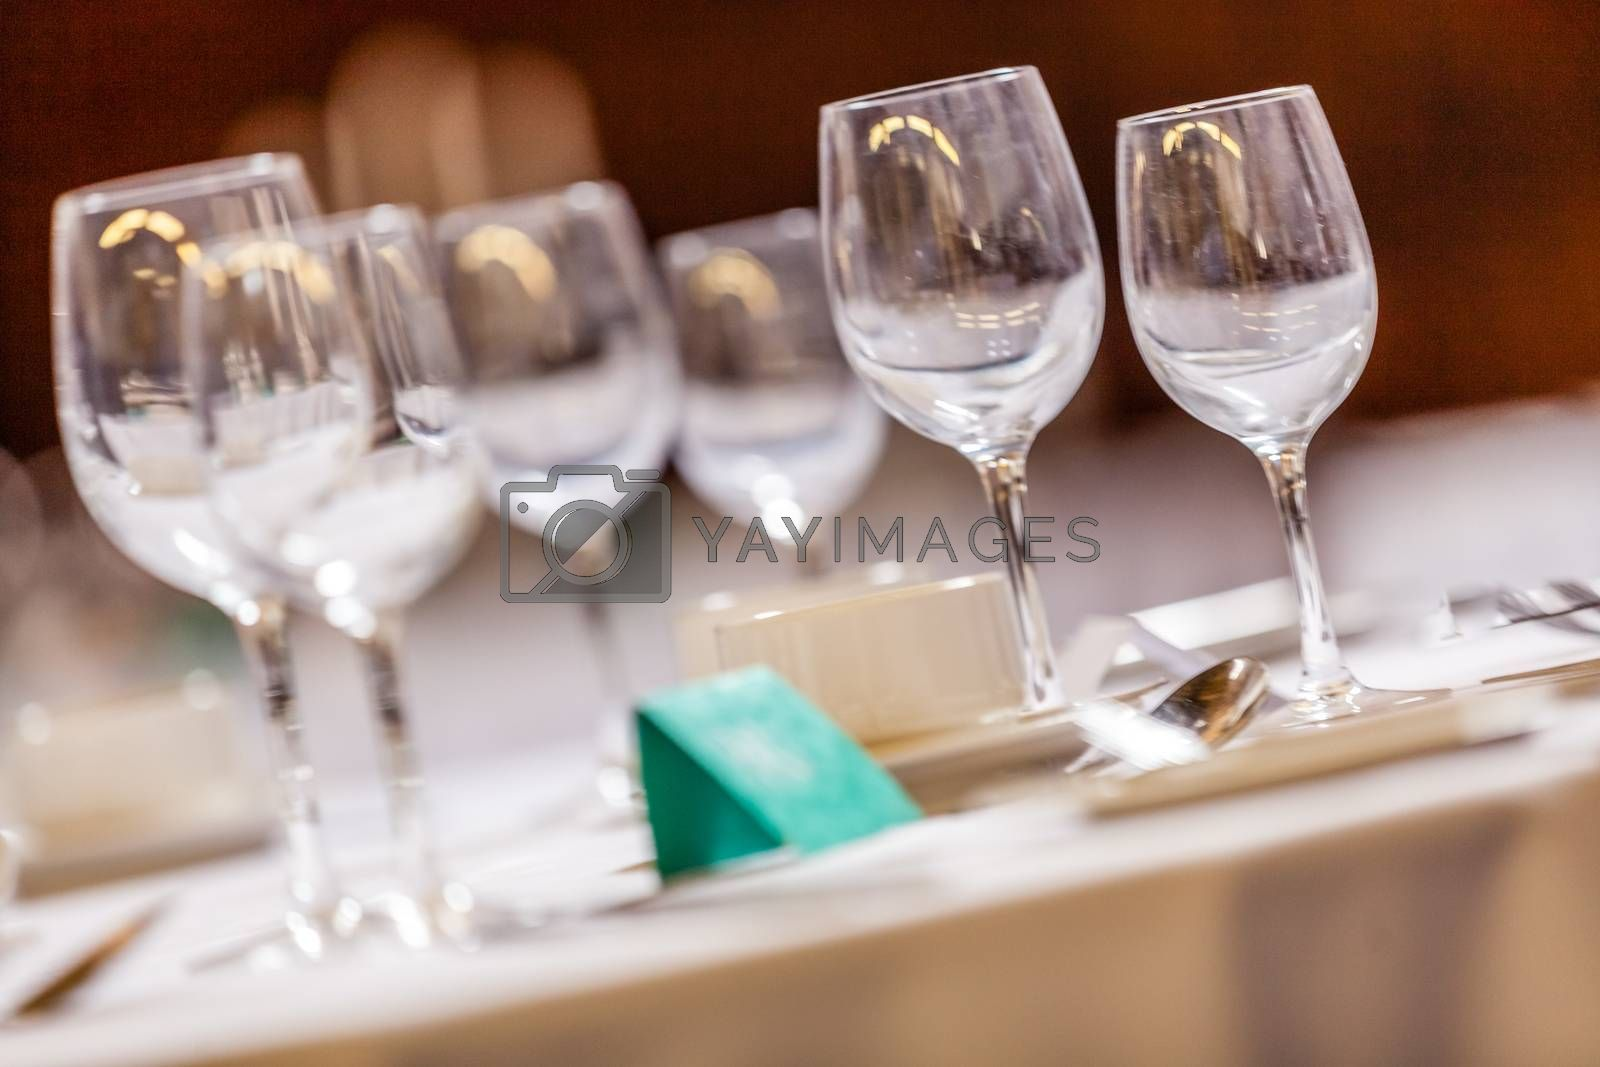 Wine glasses on the table before wedding dinner